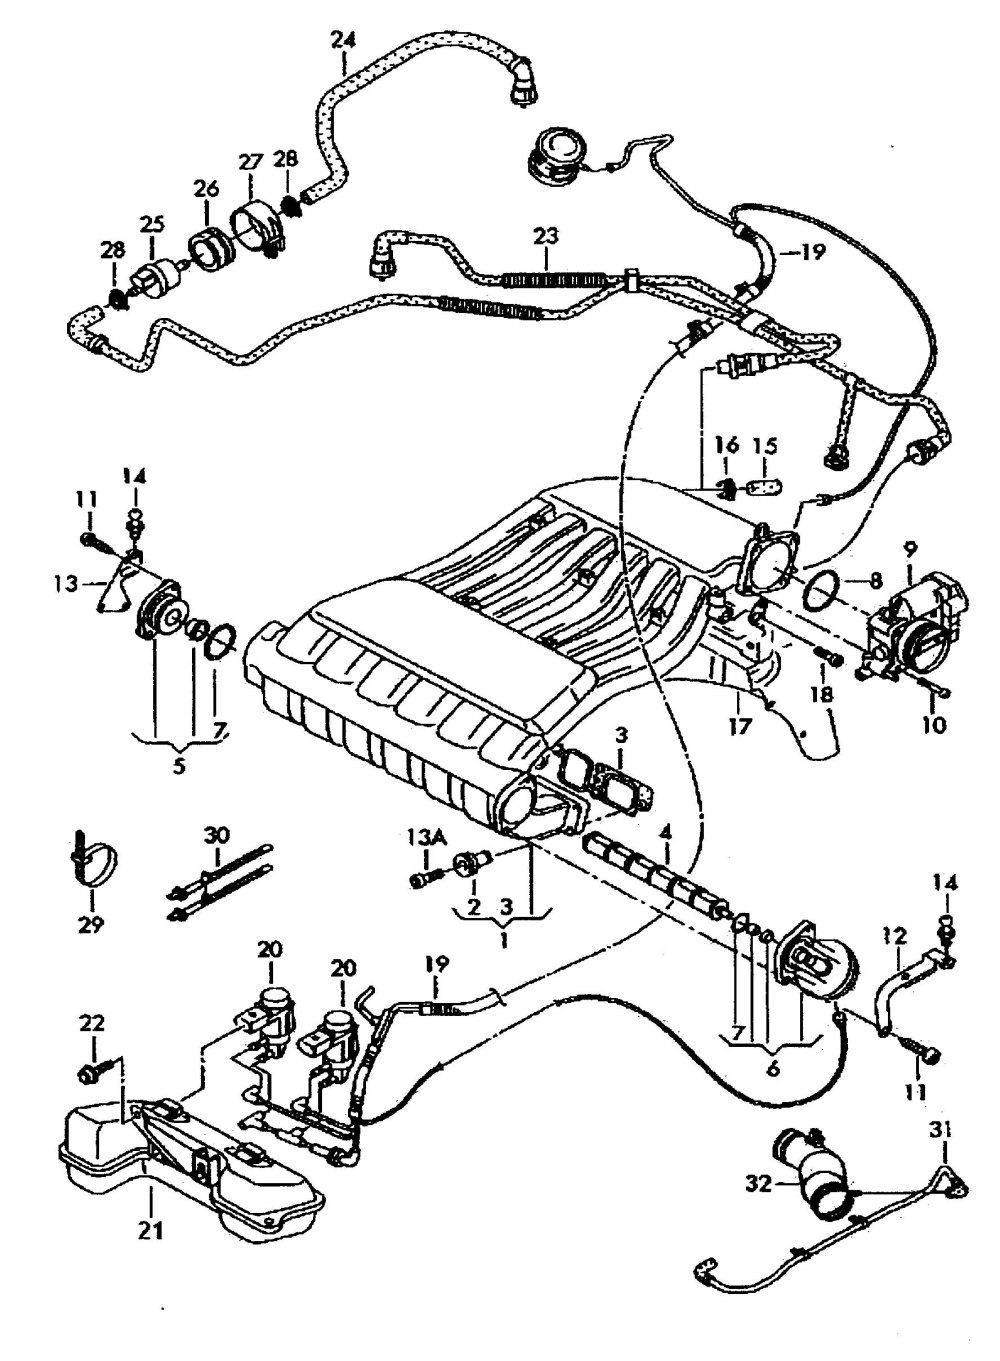 medium resolution of 24v vr6 jetta engine diagram wiring diagram yer 24v vr6 engine diagram 24v vr6 engine diagram